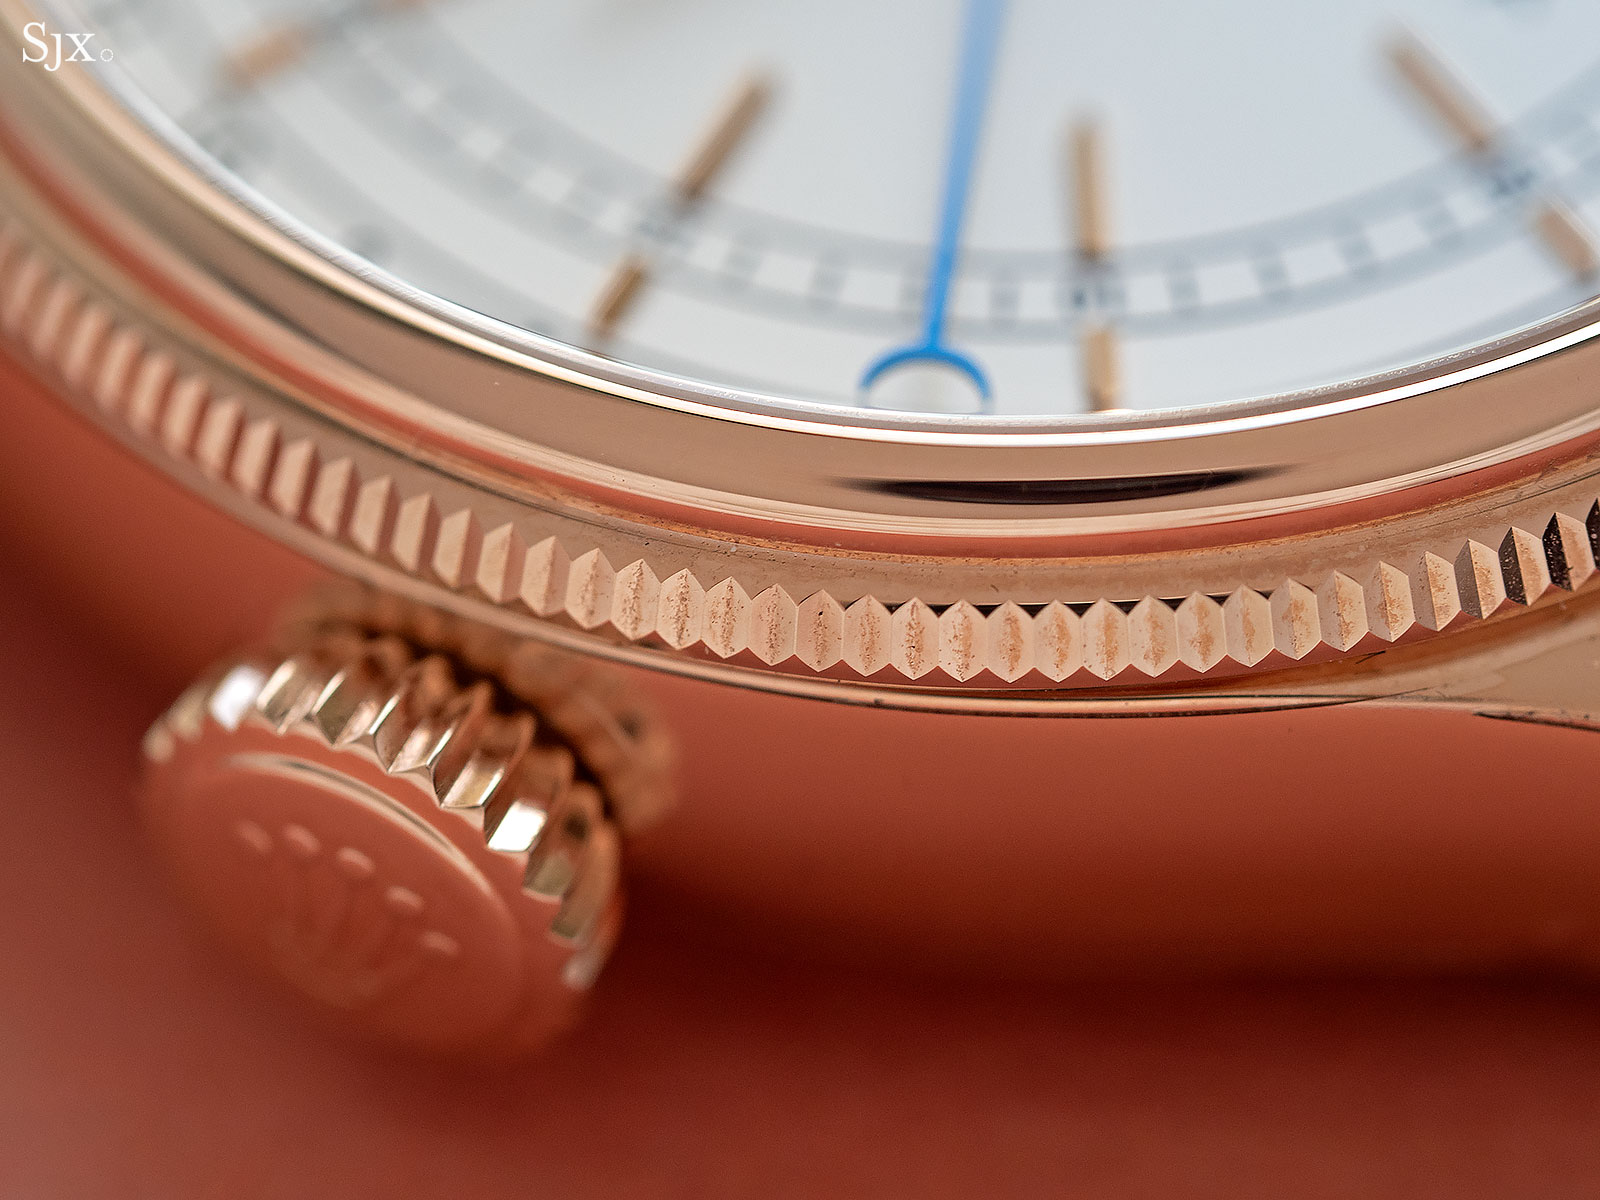 Rolex Cellini Moonphase 50535 review 13